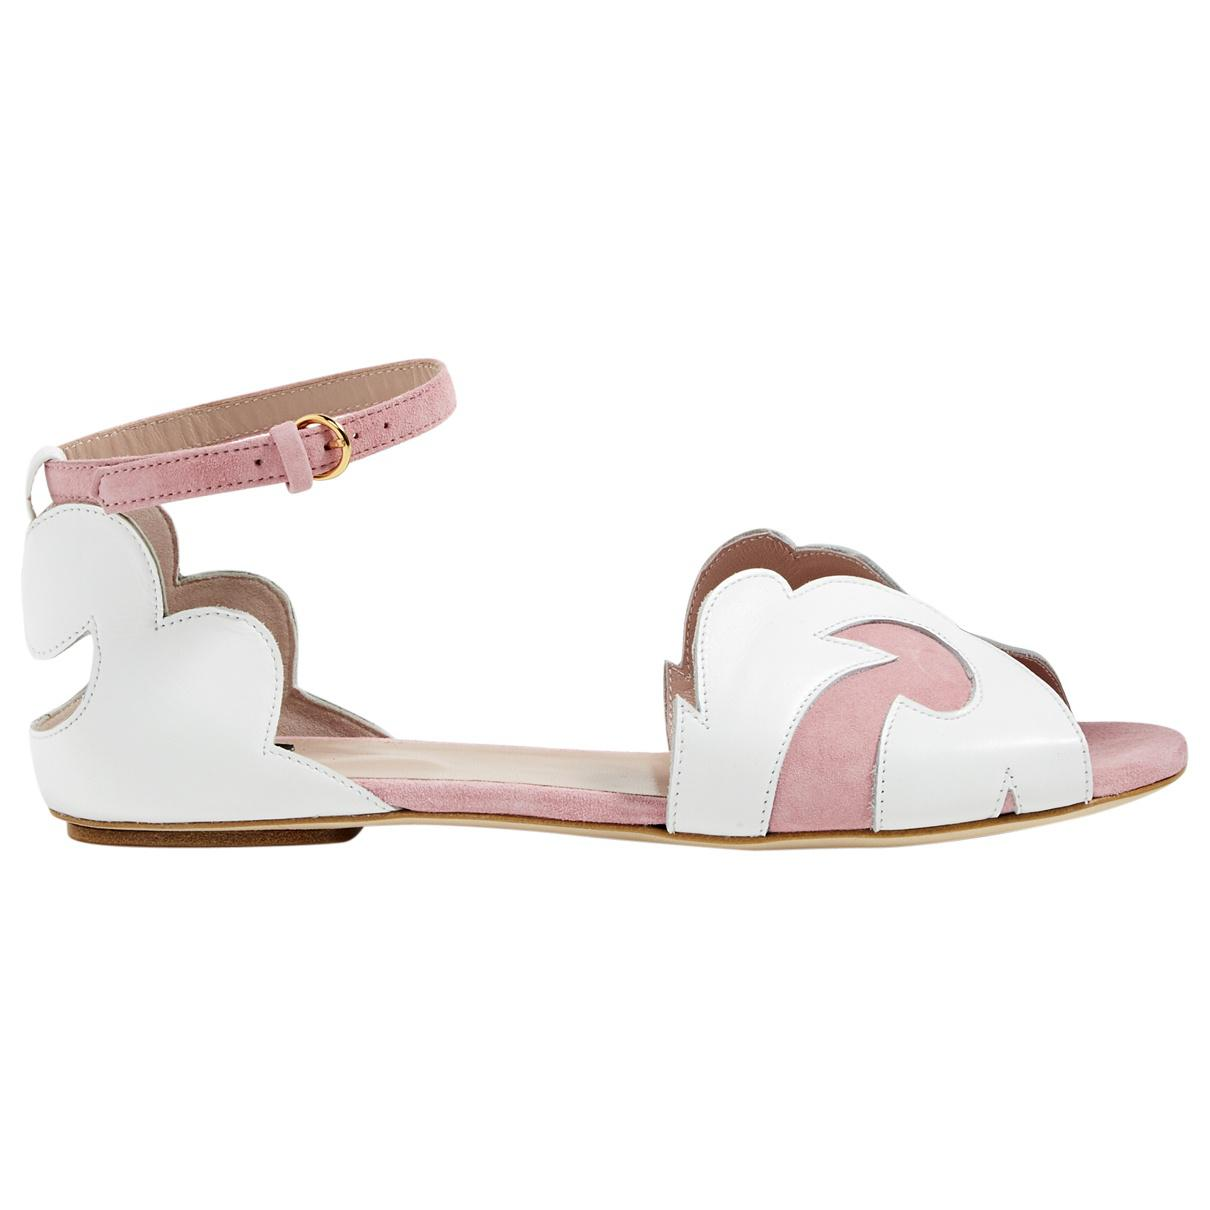 Pre-owned - Leather sandals Moschino sc7t2